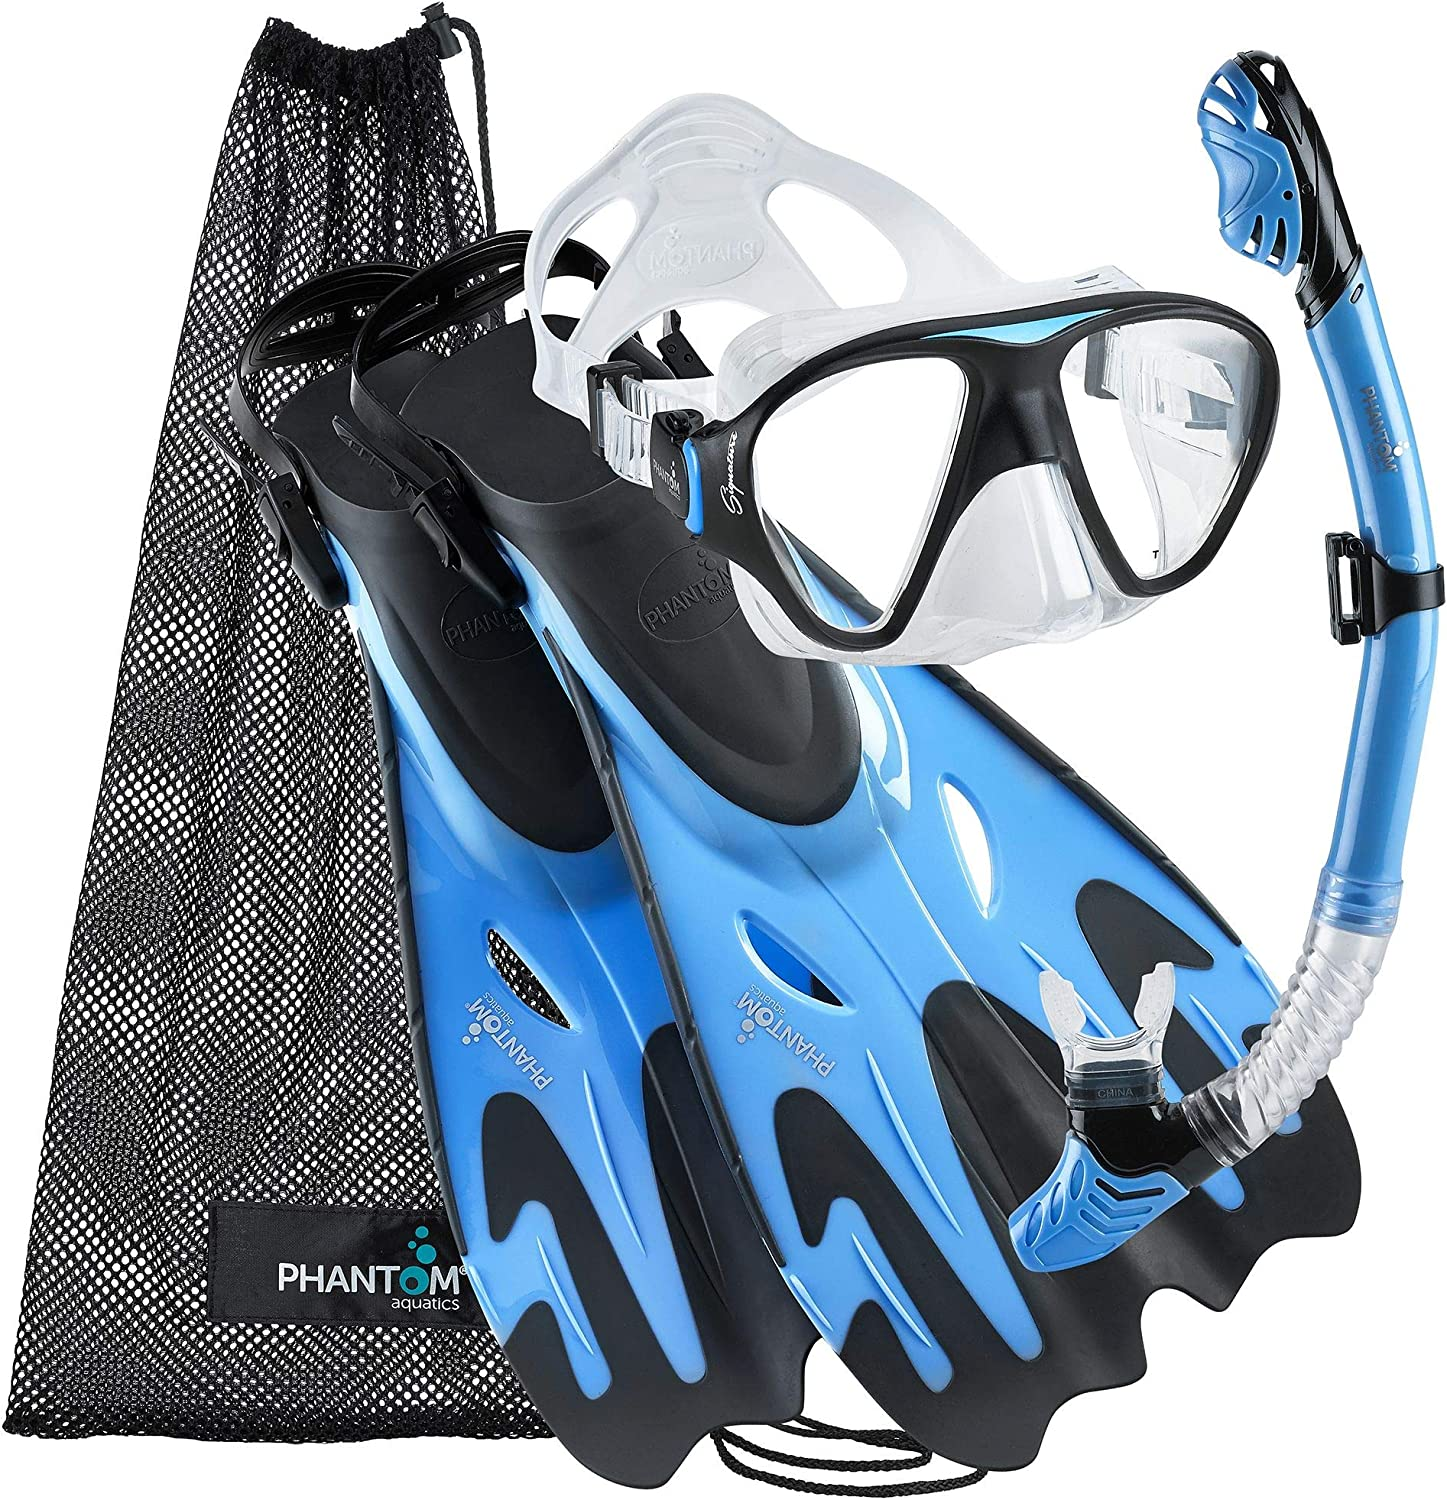 Phantom Aquatics Italian Collection Legendary Panoramic View Mask Fin Dry Snorkel Set with Deluxe Snorkeling Gear Bag… : Sports & Outdoors